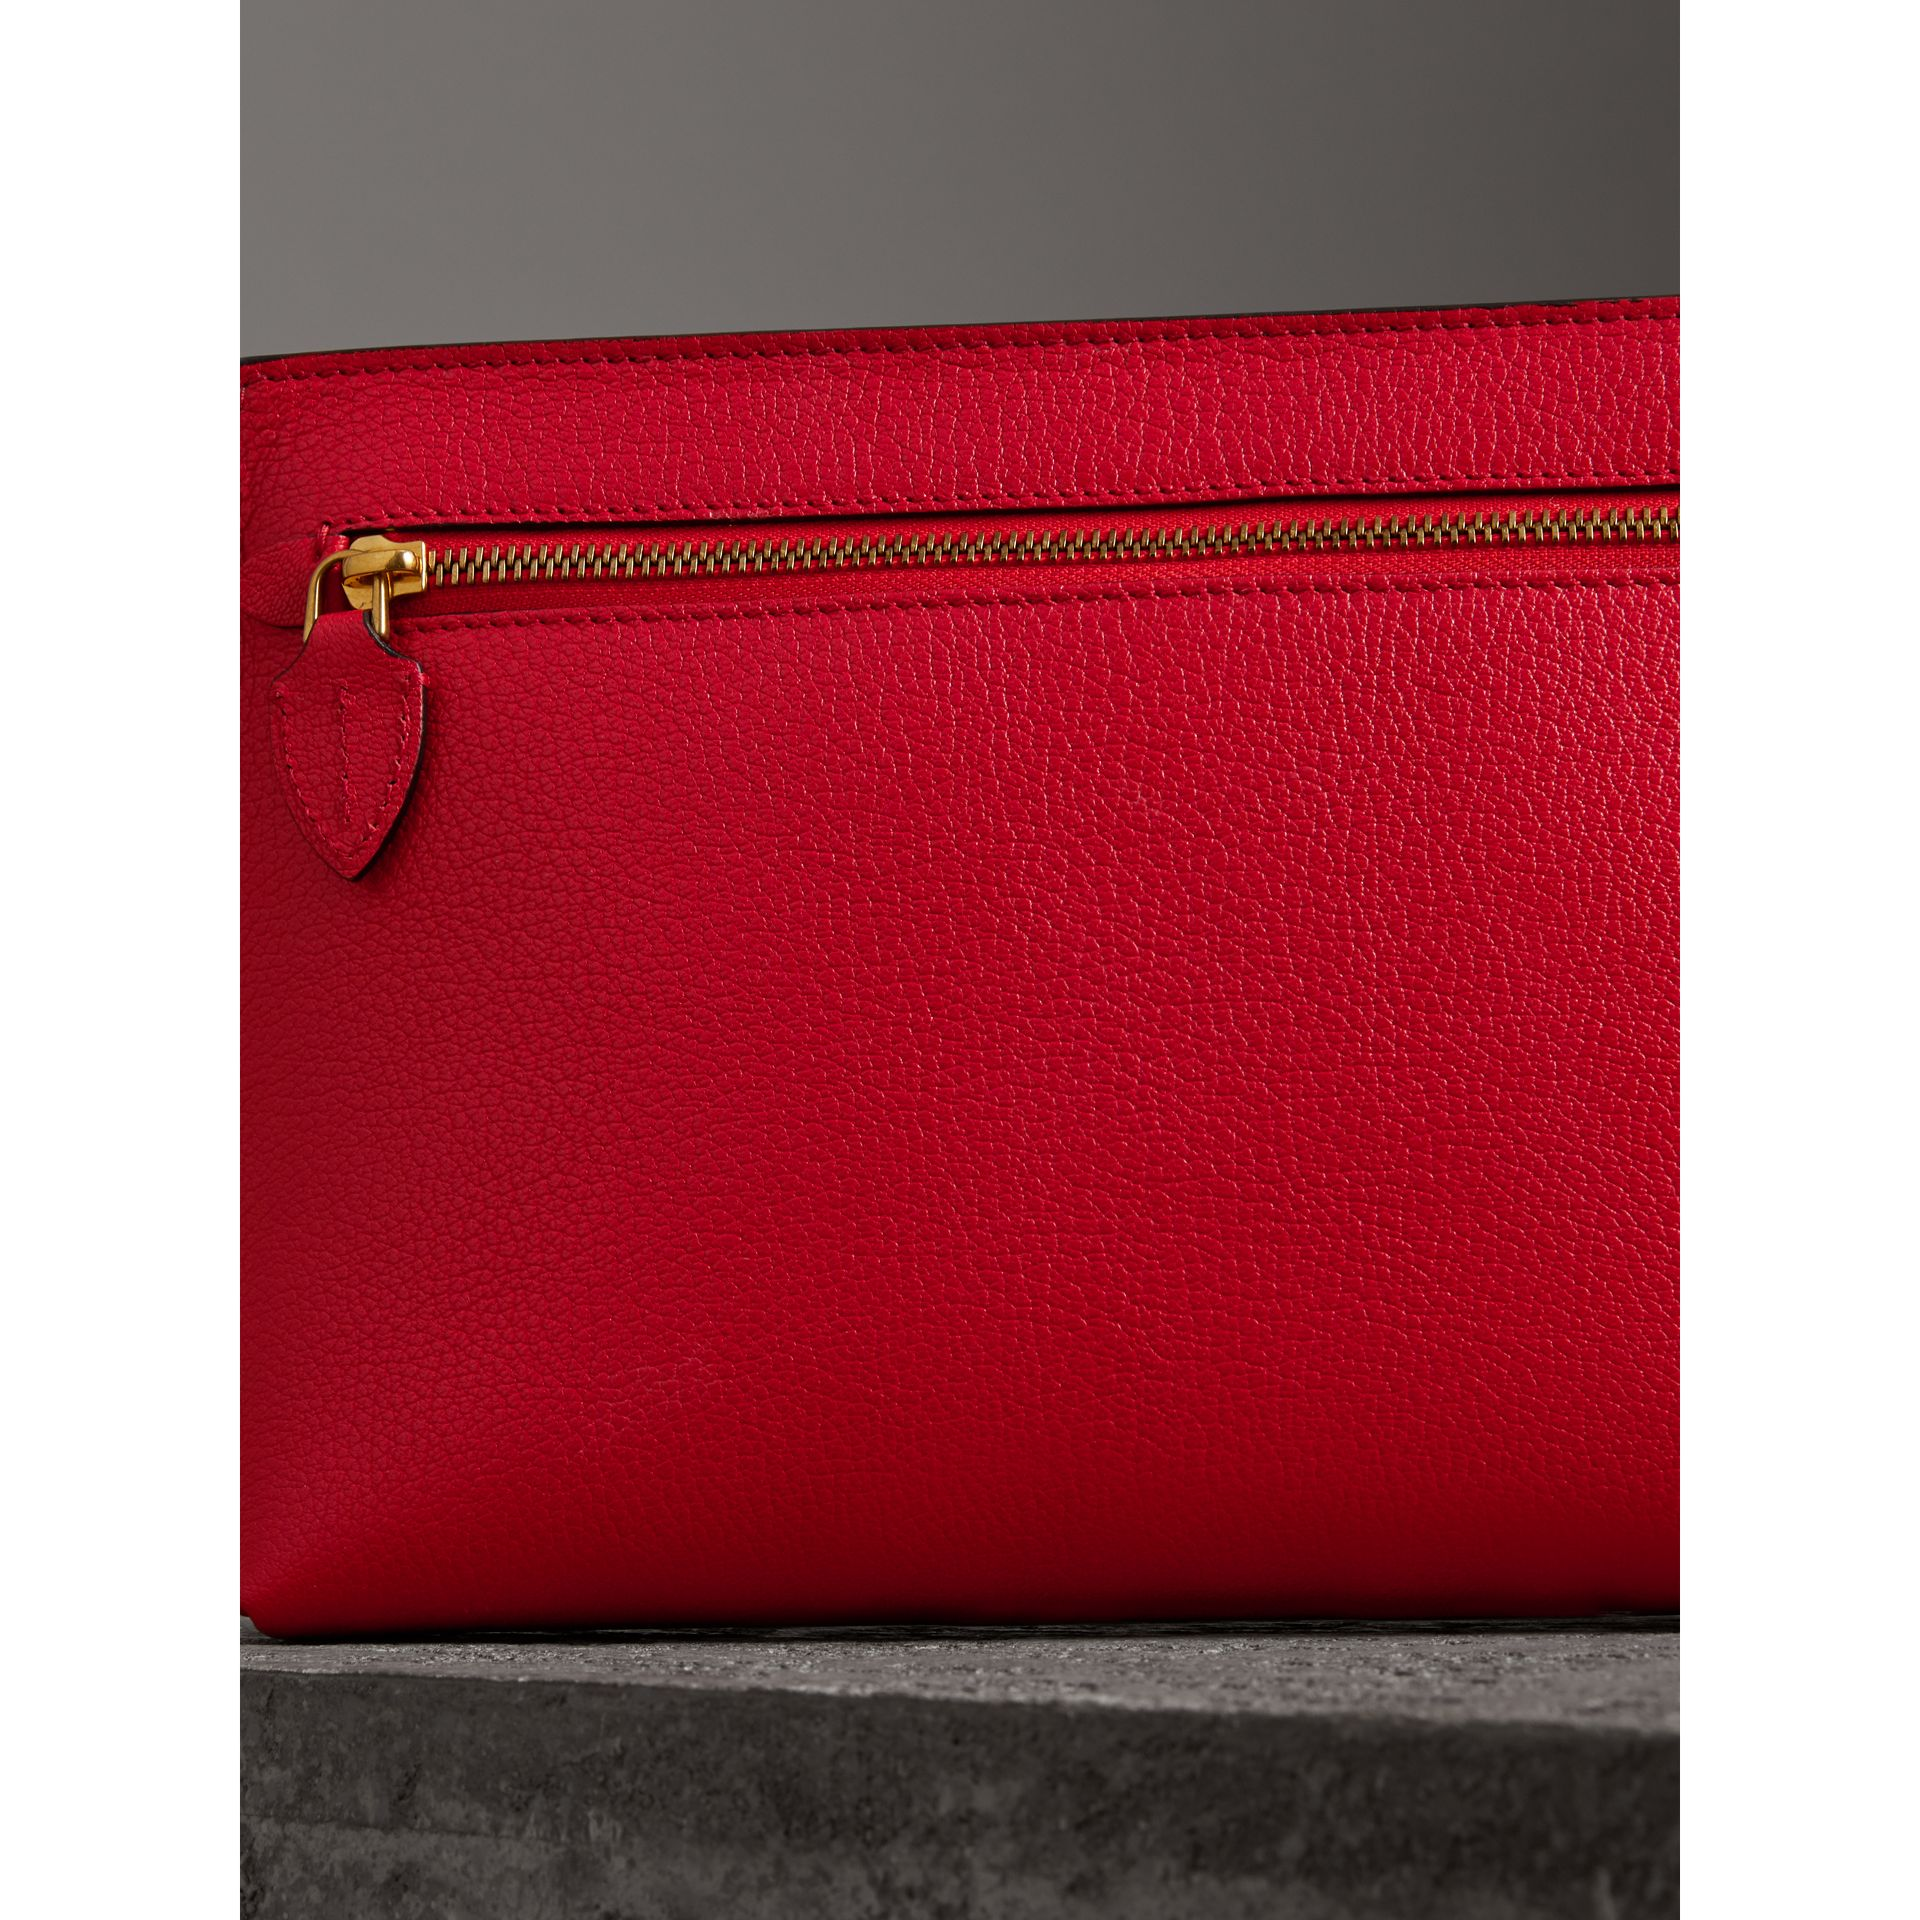 Grainy Leather Wristlet Clutch in Bright Red - Women | Burberry Australia - gallery image 2